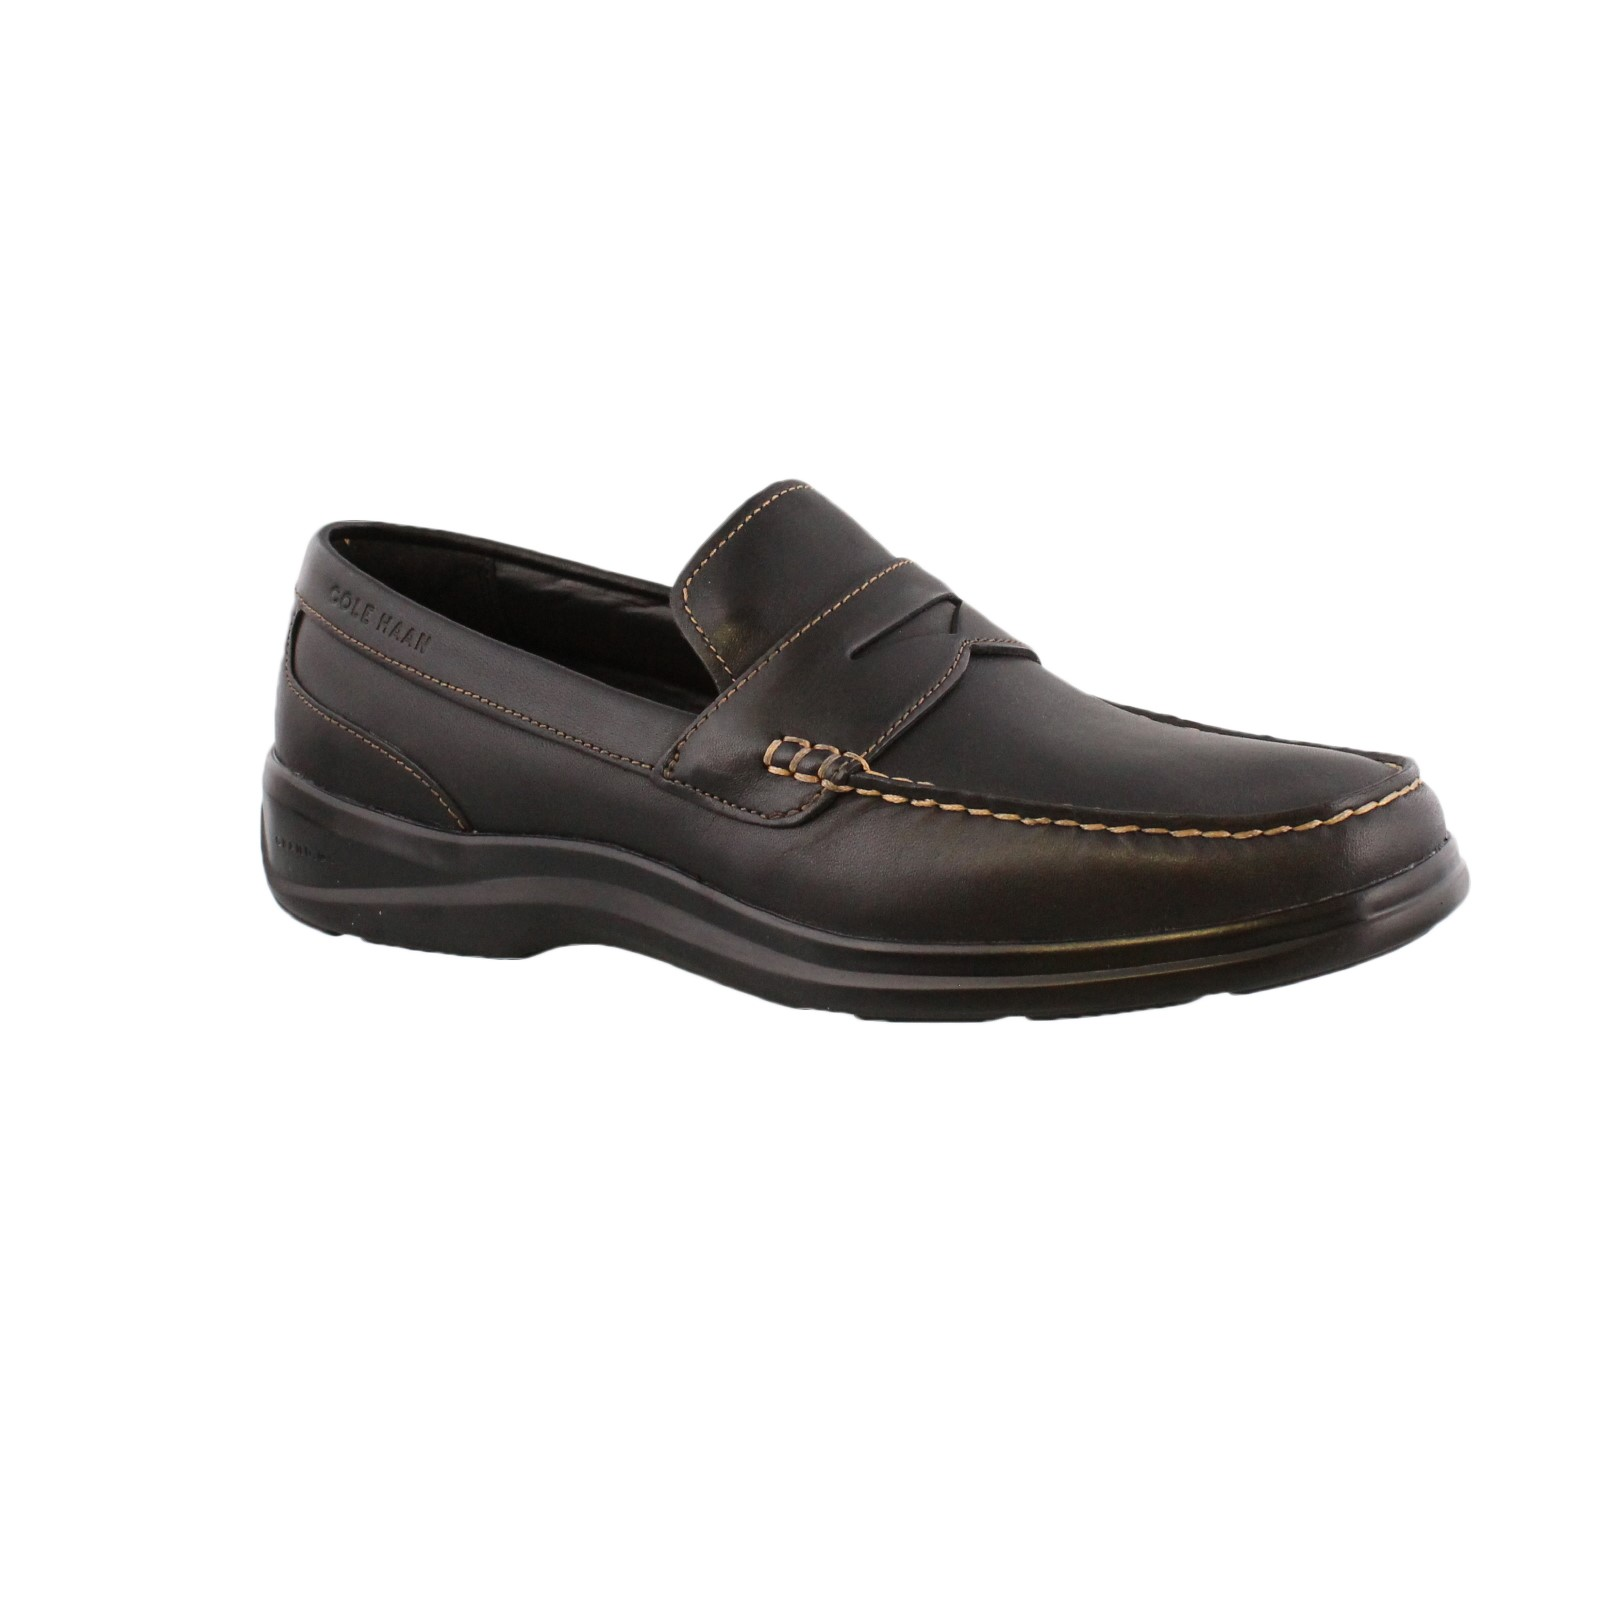 0e66cdabb78 Next. add to favorites. Men s Cole Haan